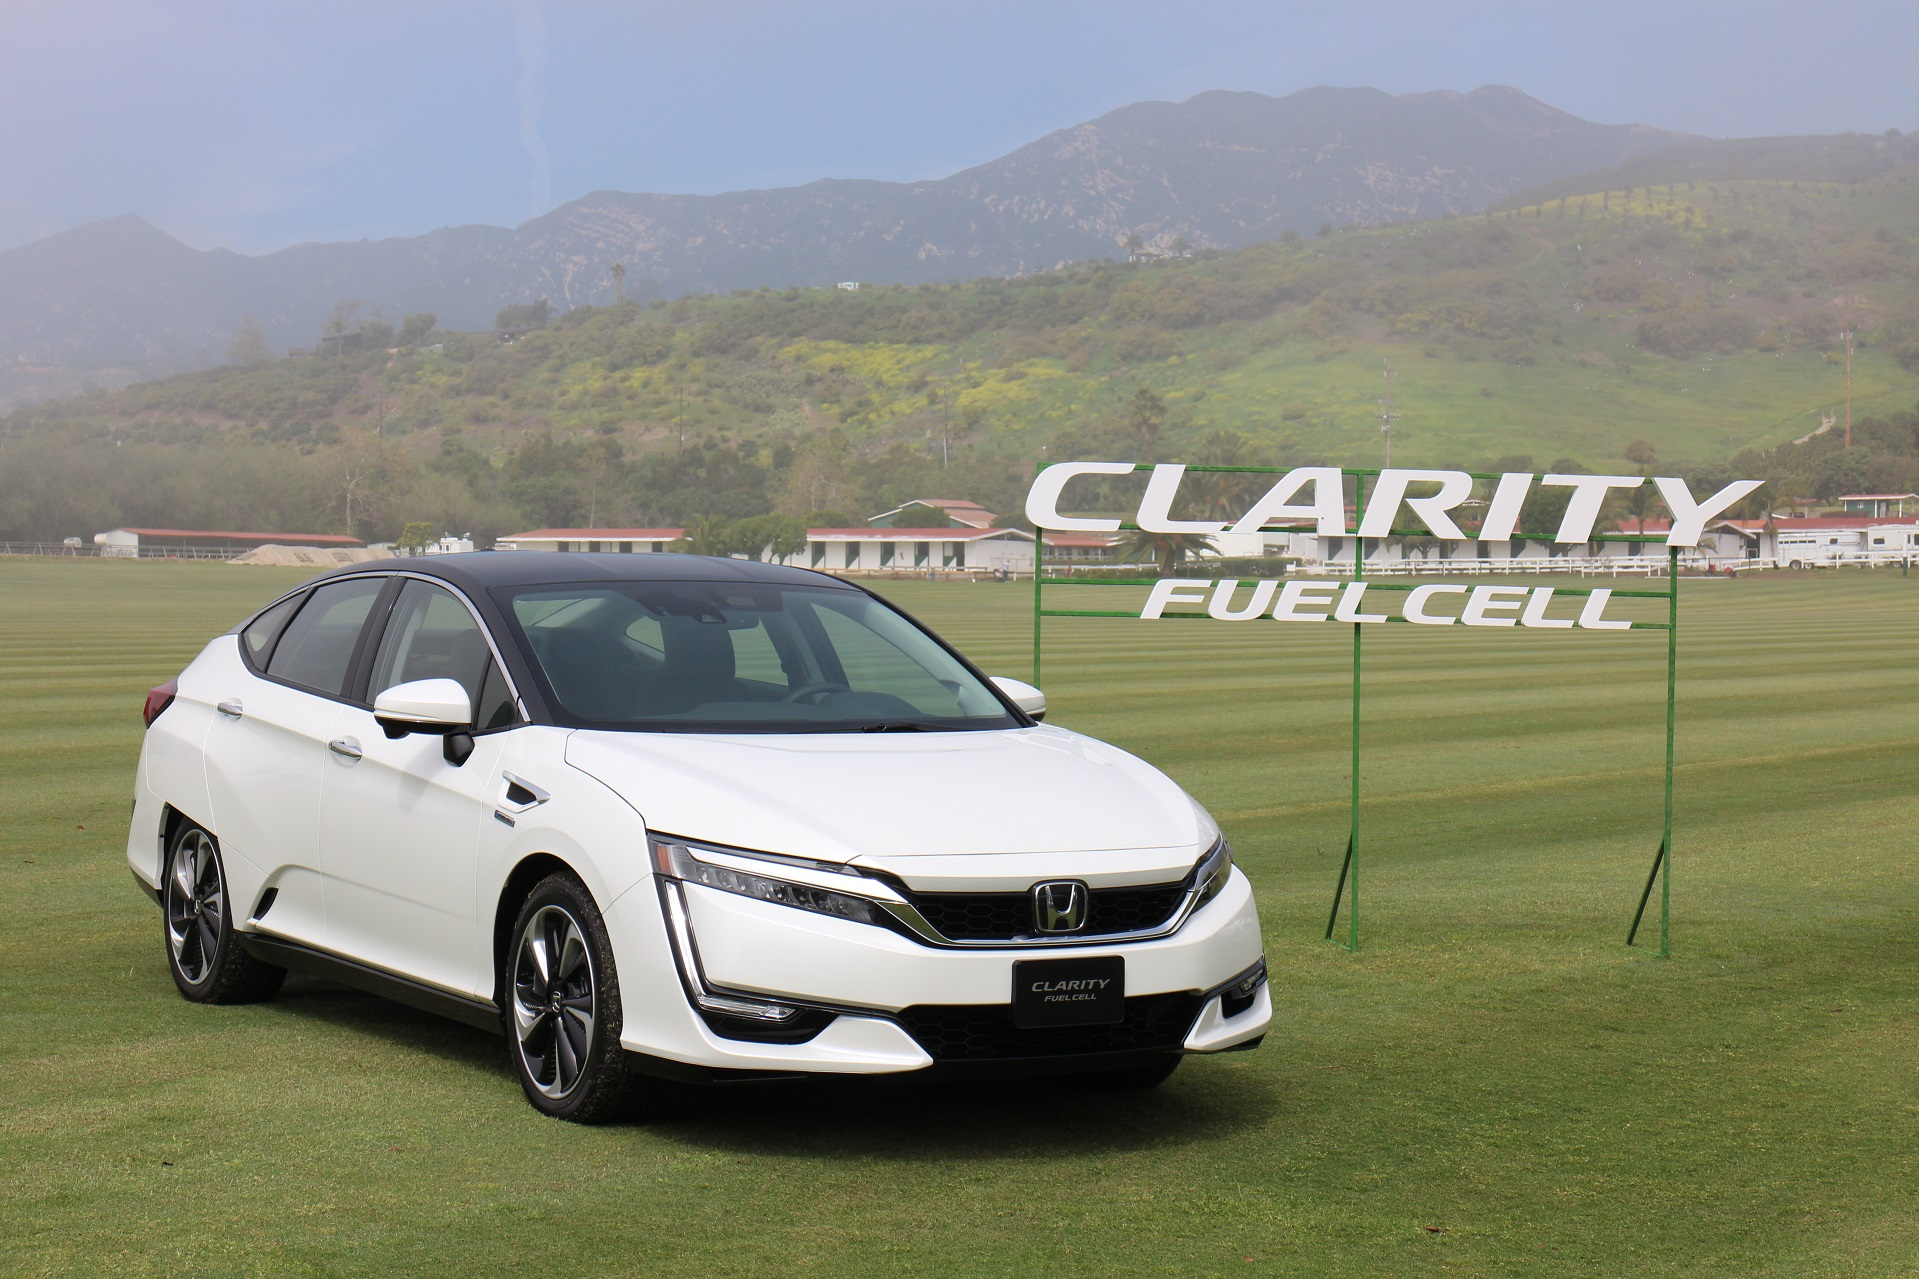 2017 honda clarity fuel cell first drive of hydrogen. Black Bedroom Furniture Sets. Home Design Ideas